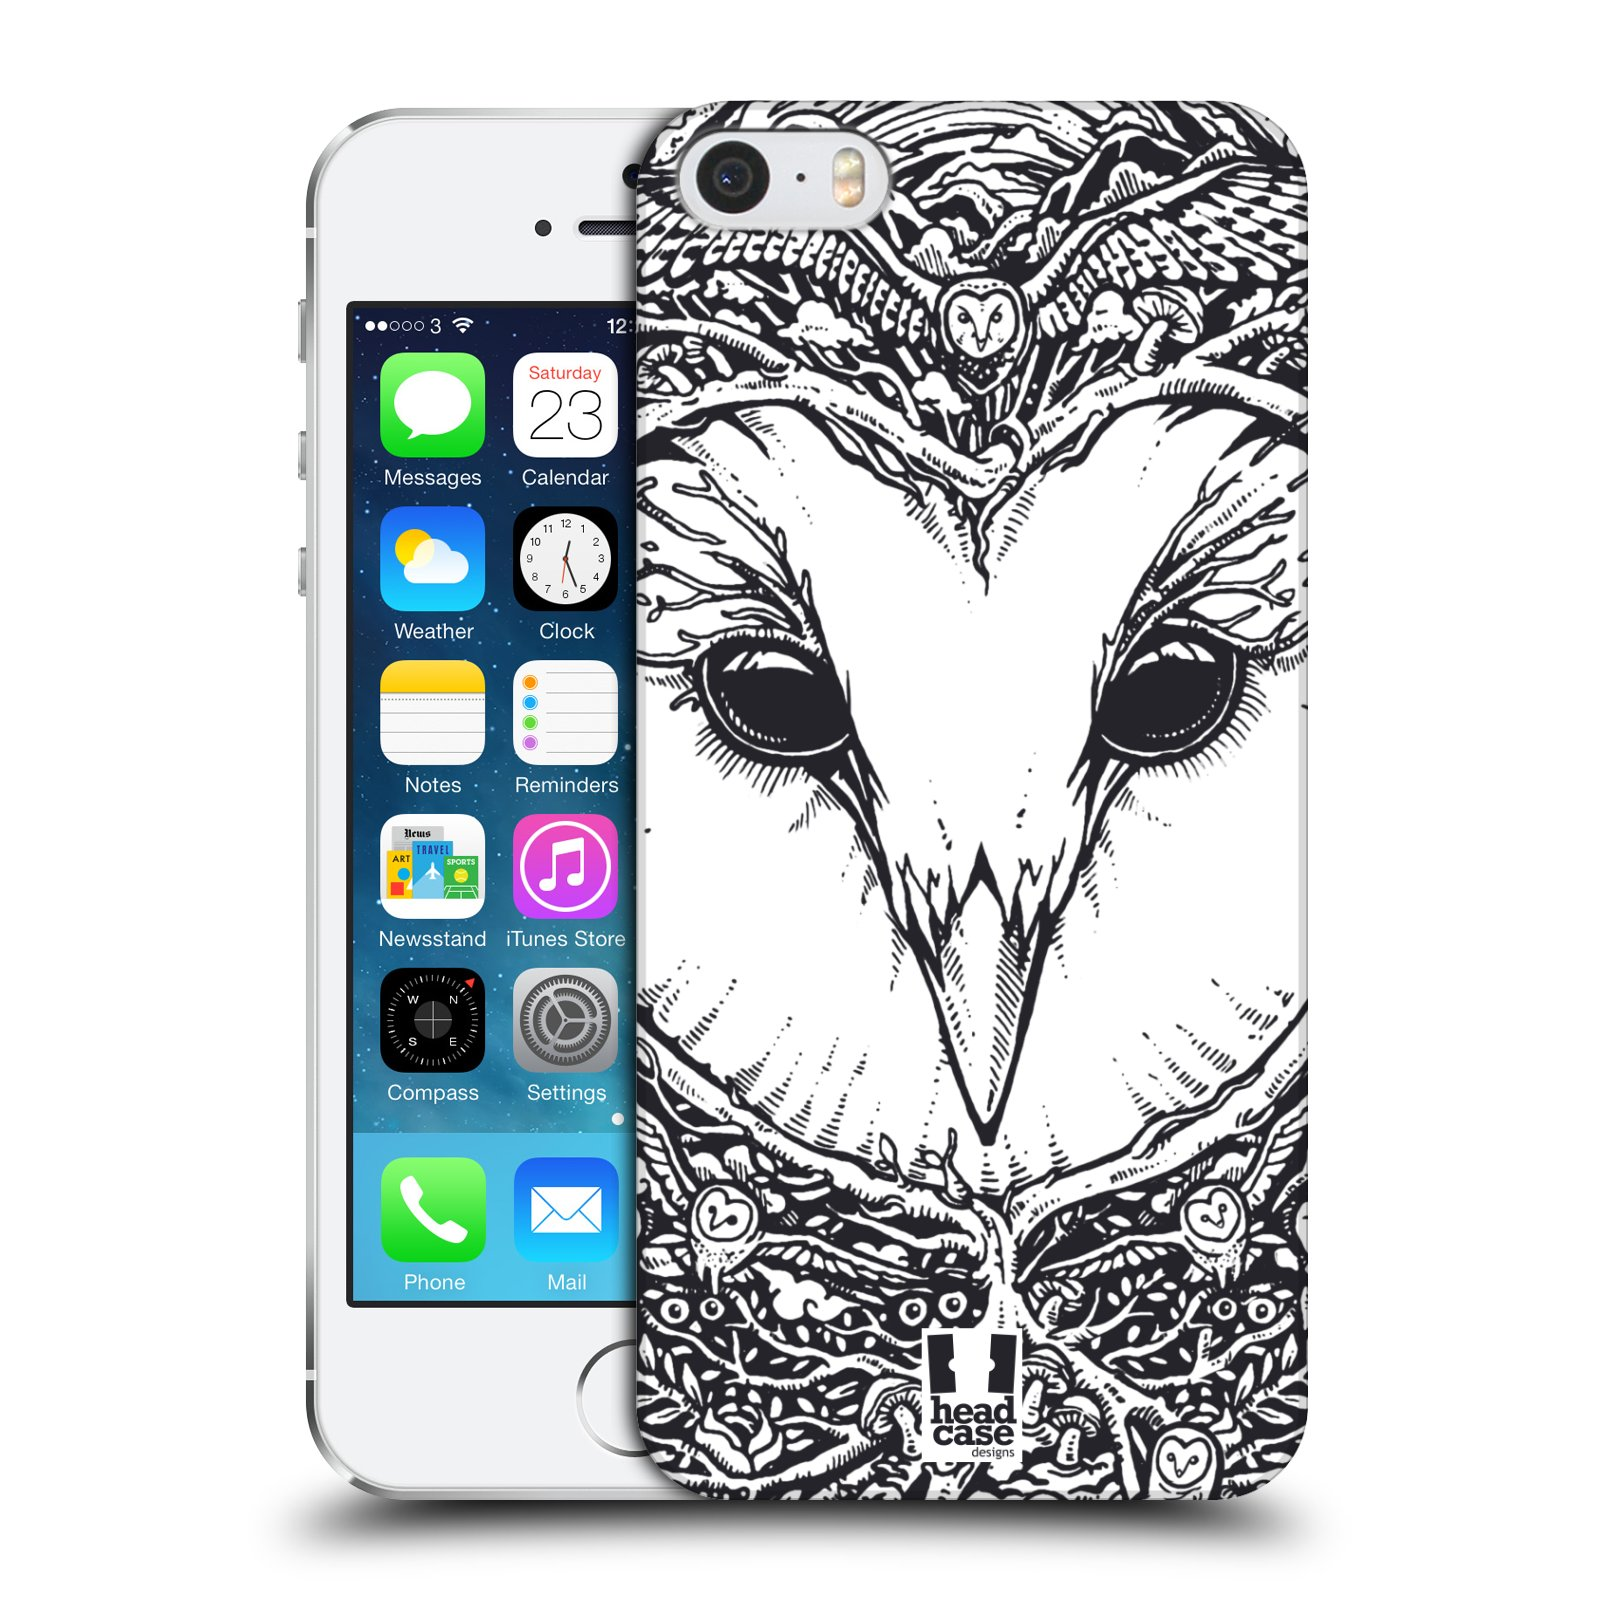 HEAD CASE DESIGNS DOODLE ANIMAL FACES CASE COVER FOR APPLE iPHONE 5